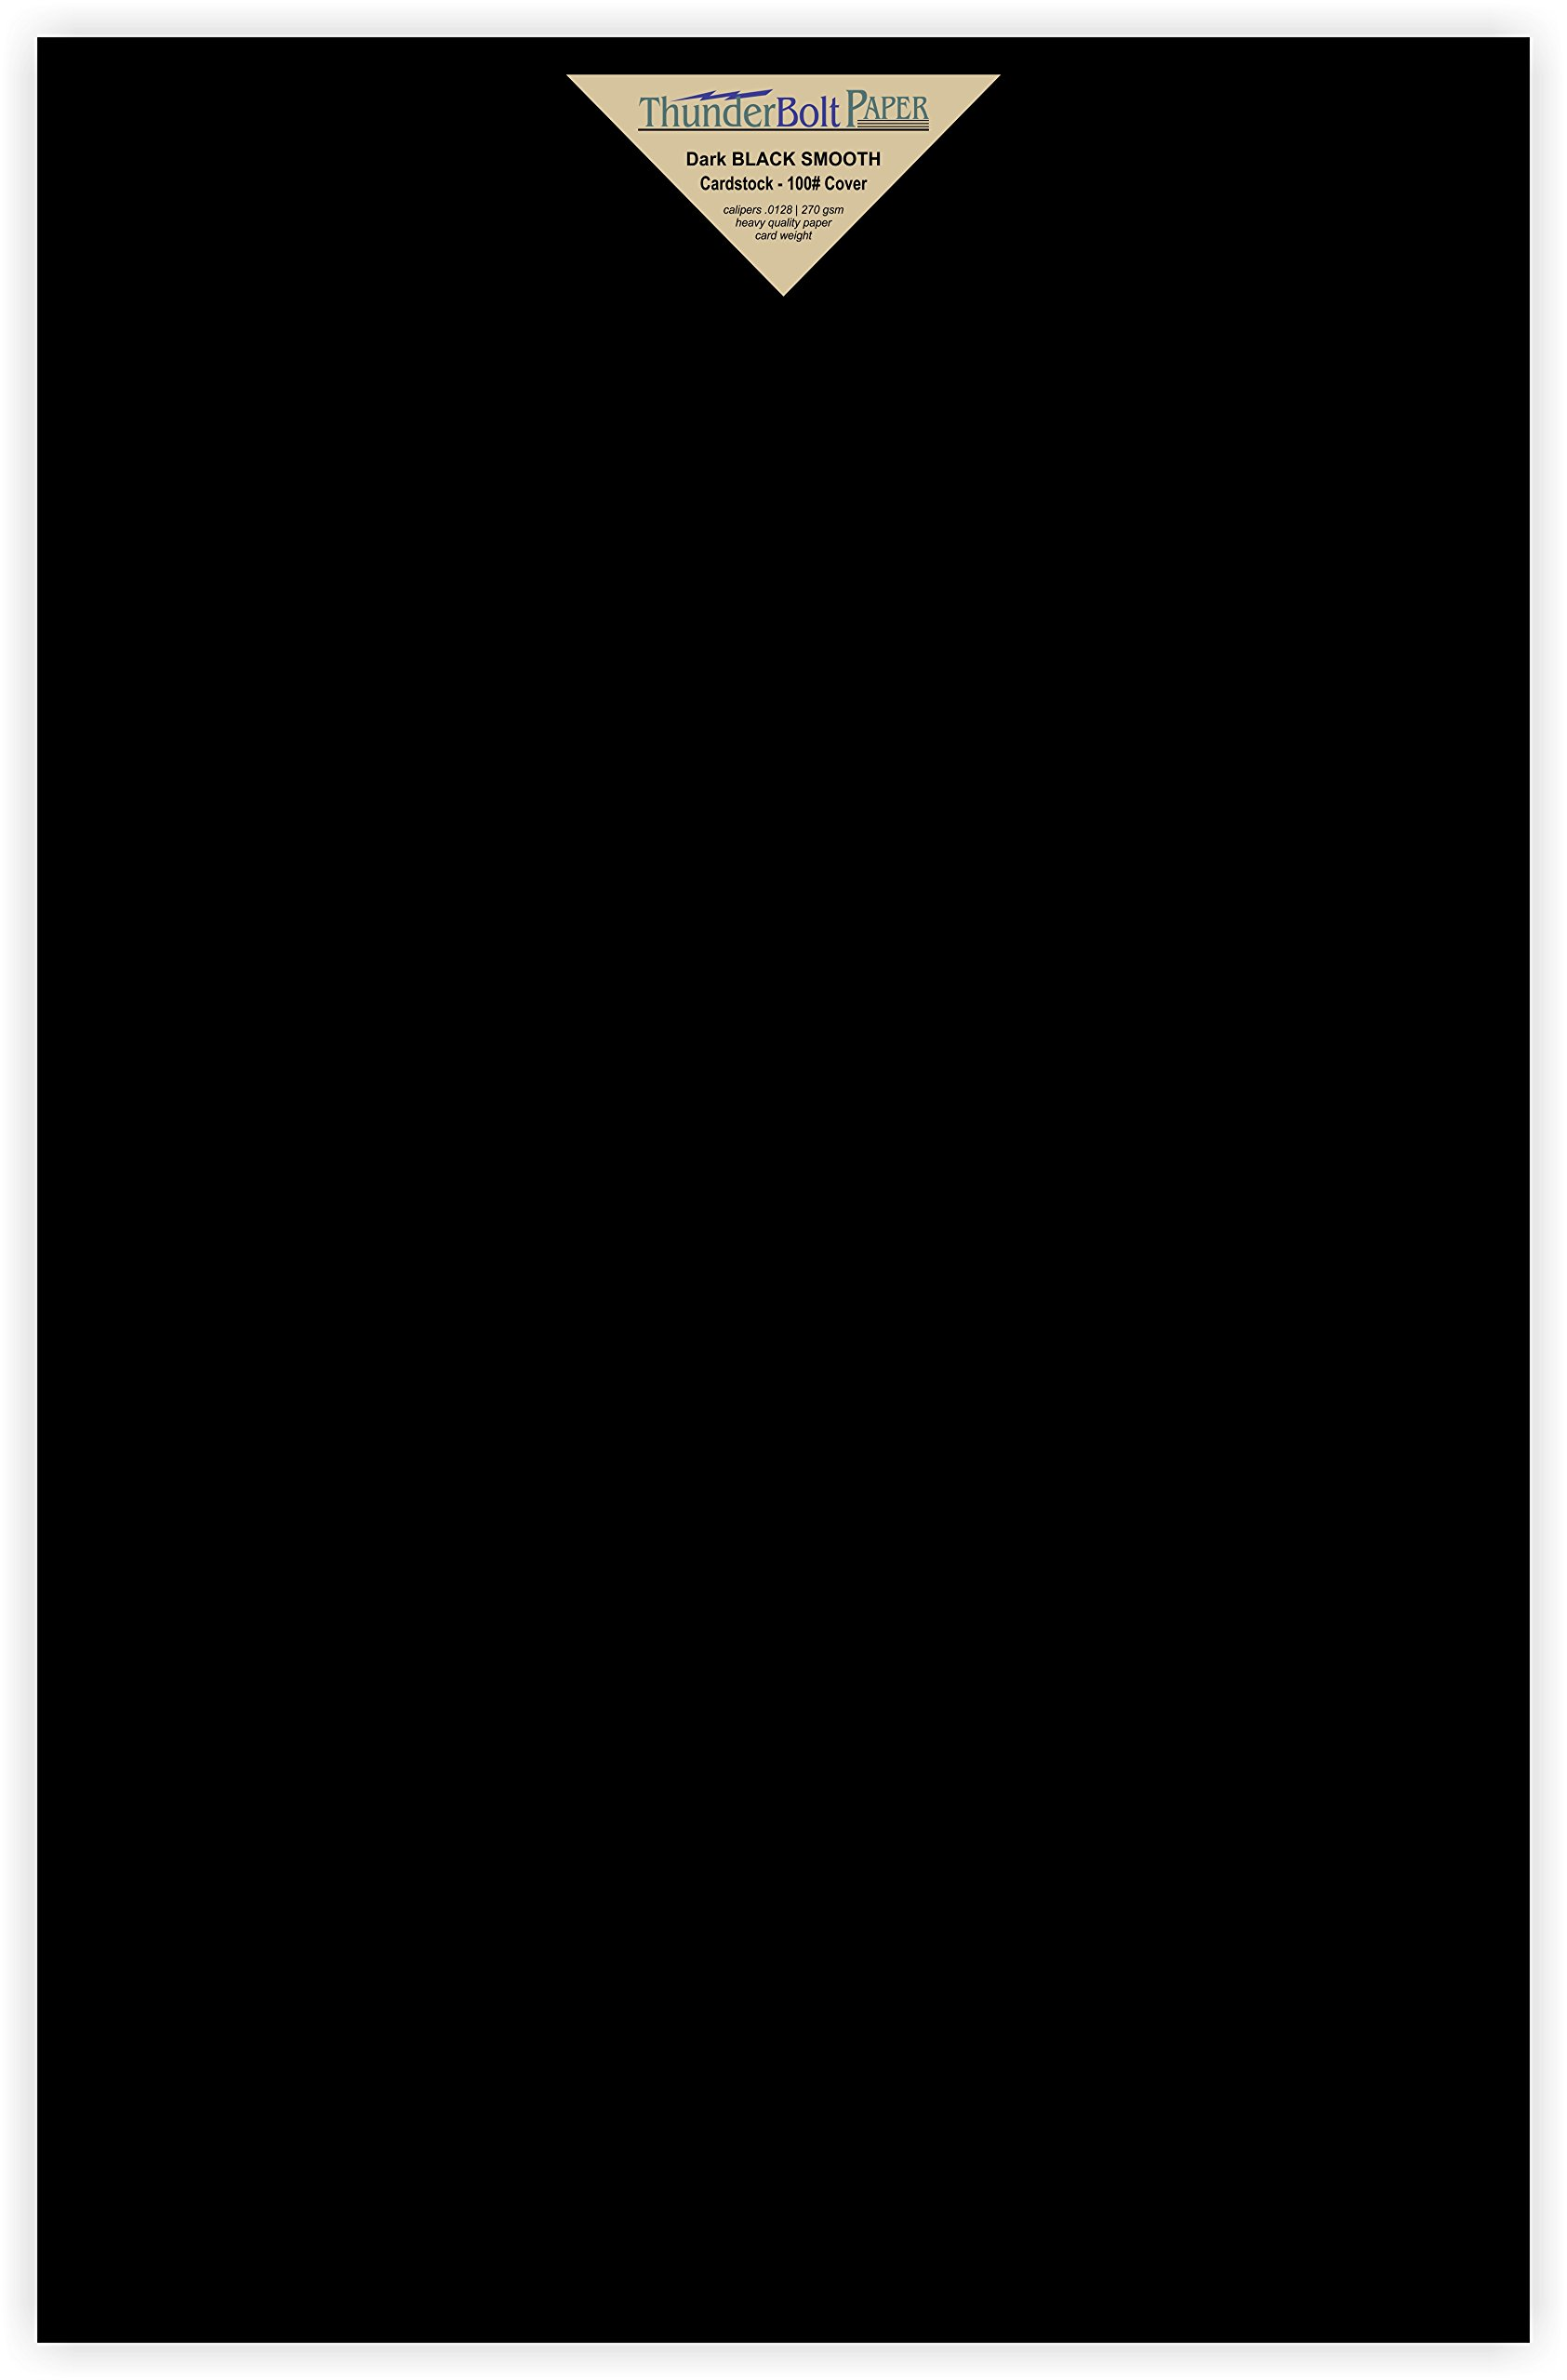 20 Dark Black Smooth Card Sheets - 100# - 11'' X 17'' (11X17 Inches) Tabloid|Ledger|Booklet Size - 100 lb/pound Cover Weight Fine Paper for Quality Results on a Smooth Finish